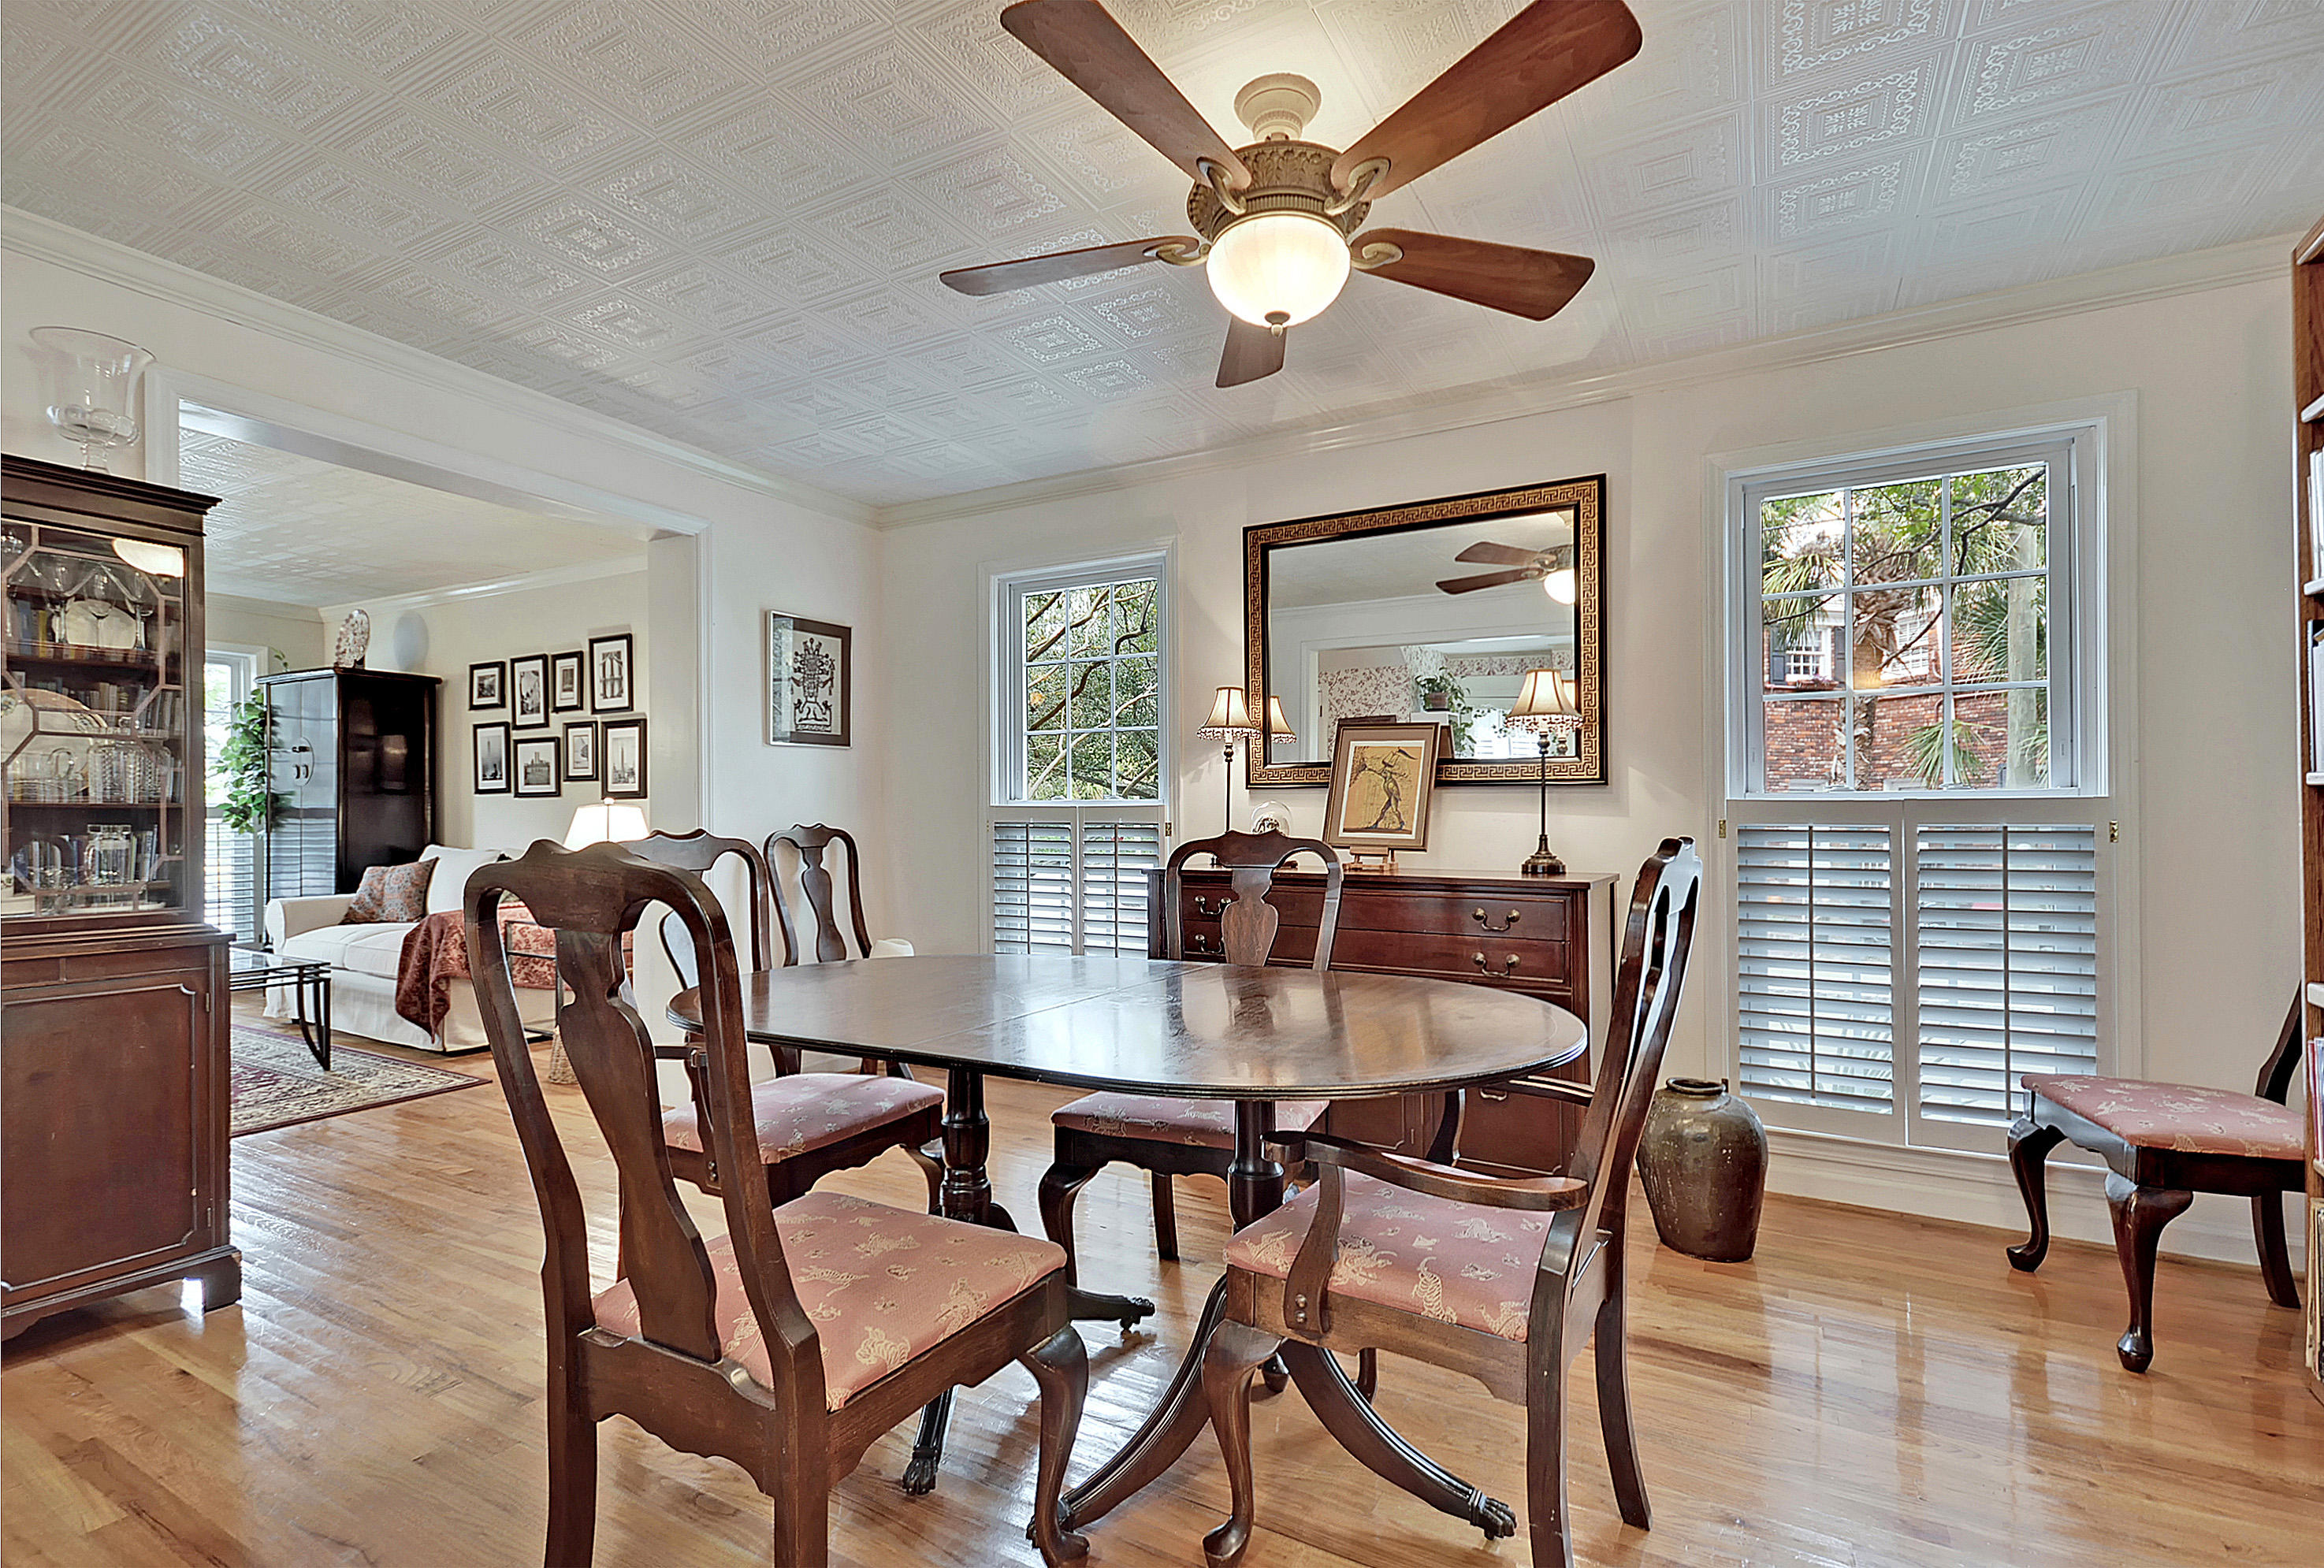 South of Broad Homes For Sale - 0 Rutledge, Charleston, SC - 37